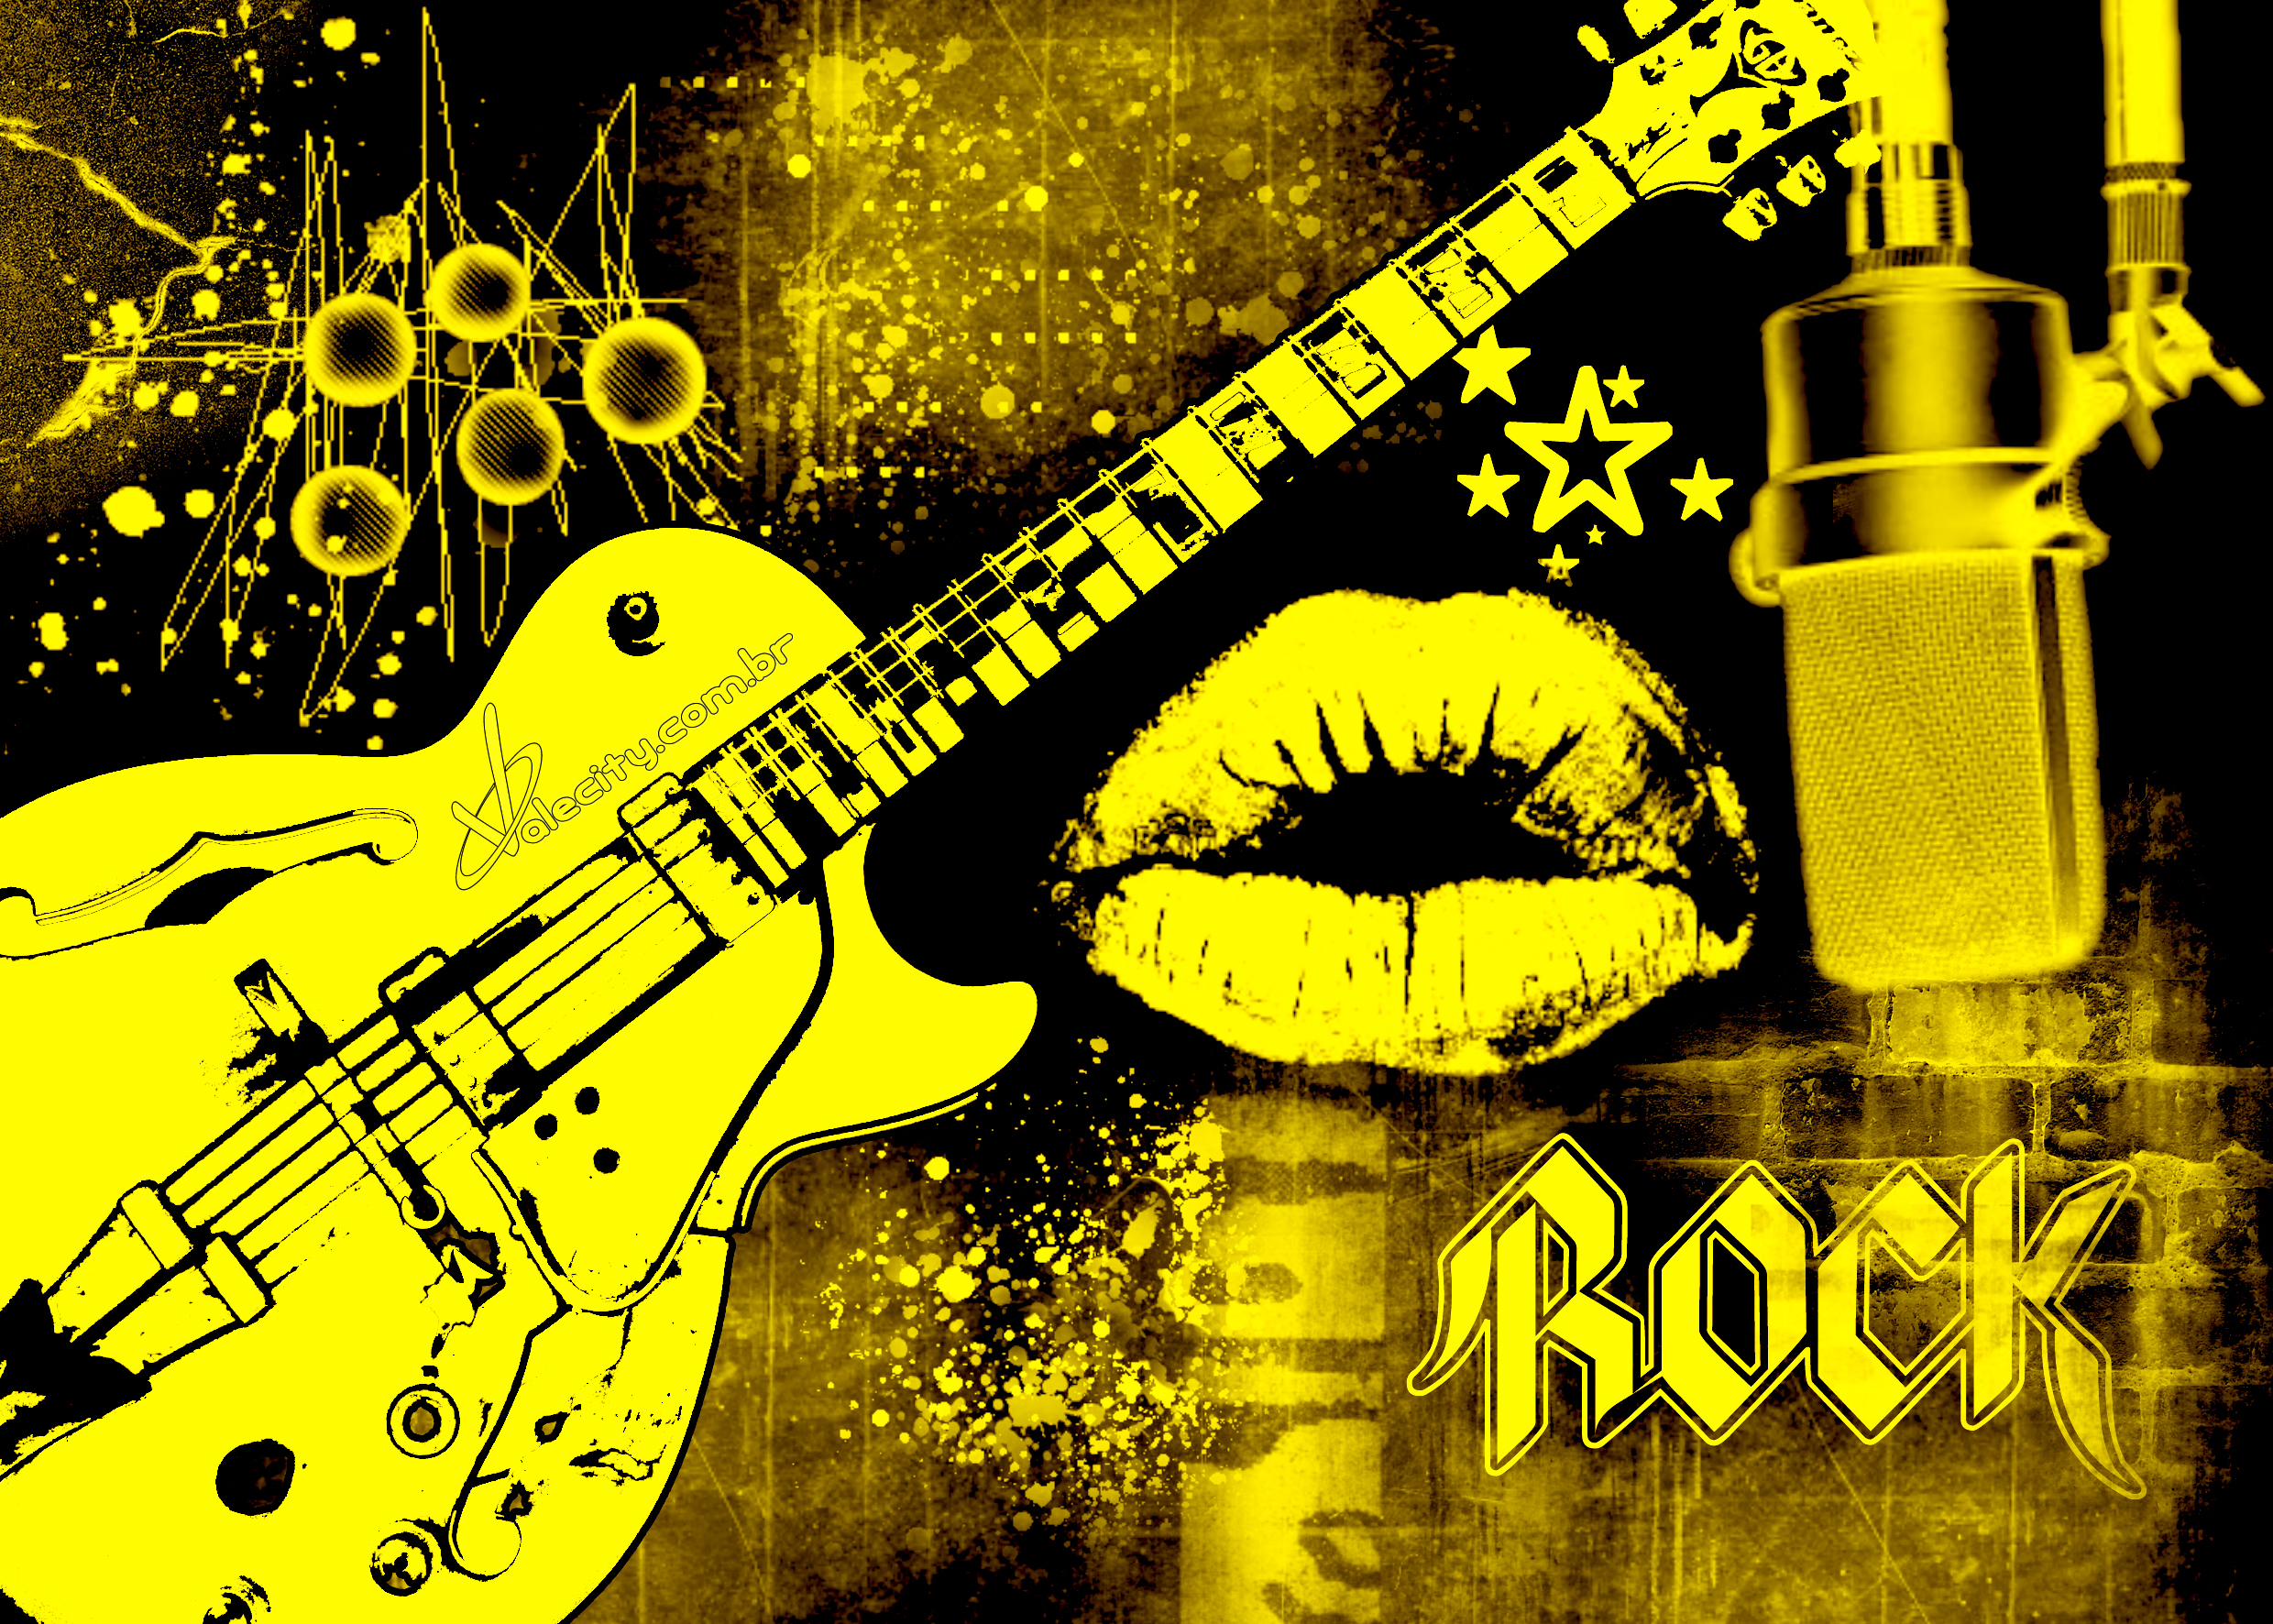 Music Background Images: Rock HD Wallpaper